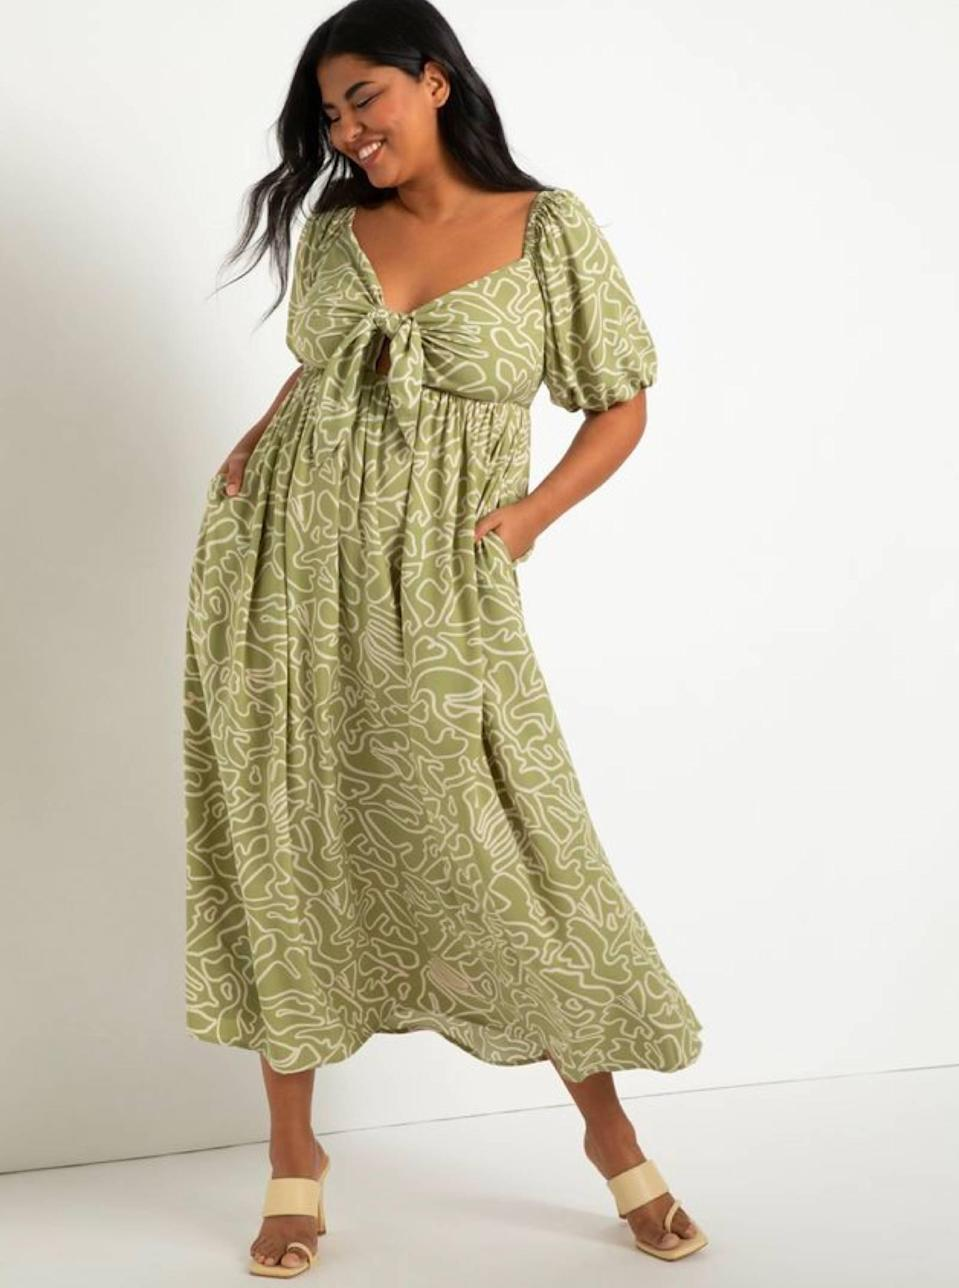 """Squiggly lines and sage green are always an instant mood boost, and this playful look deserves a spot on your summer grid. $140, Eloquii. <a href=""""https://www.eloquii.com/tie-front-full-skirted-maxi-dress/1237190.html?"""" rel=""""nofollow noopener"""" target=""""_blank"""" data-ylk=""""slk:Get it now!"""" class=""""link rapid-noclick-resp"""">Get it now!</a>"""